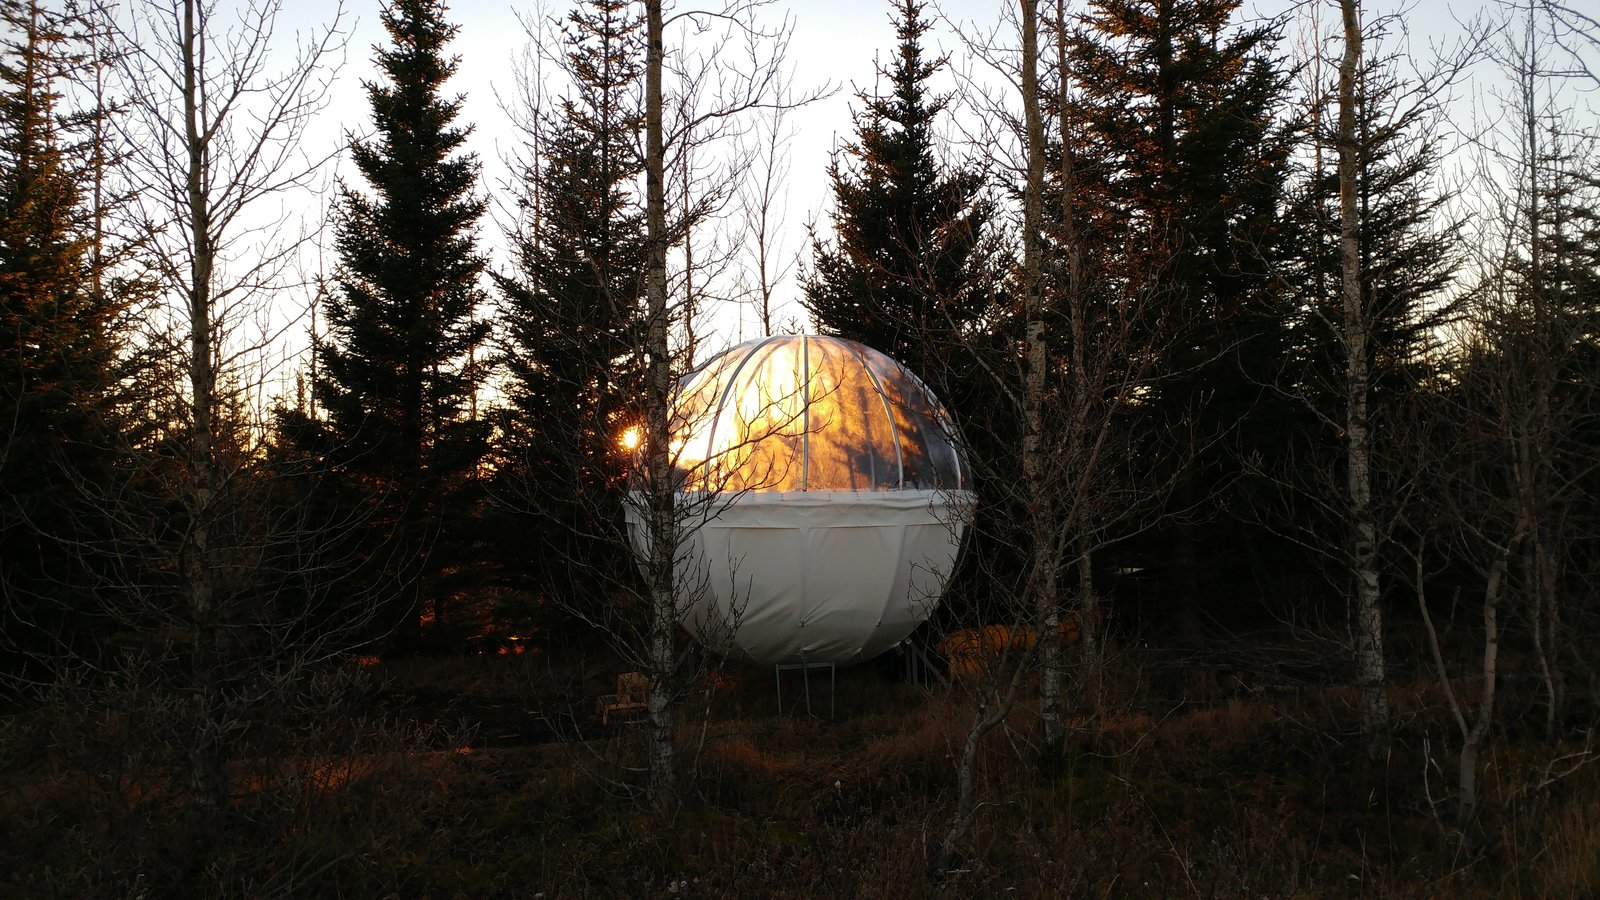 Tagged: Outdoor, Woodland, and Trees. Sleep Under the Northern Lights in an Icelandic Bubble Hotel - Photo 3 of 6